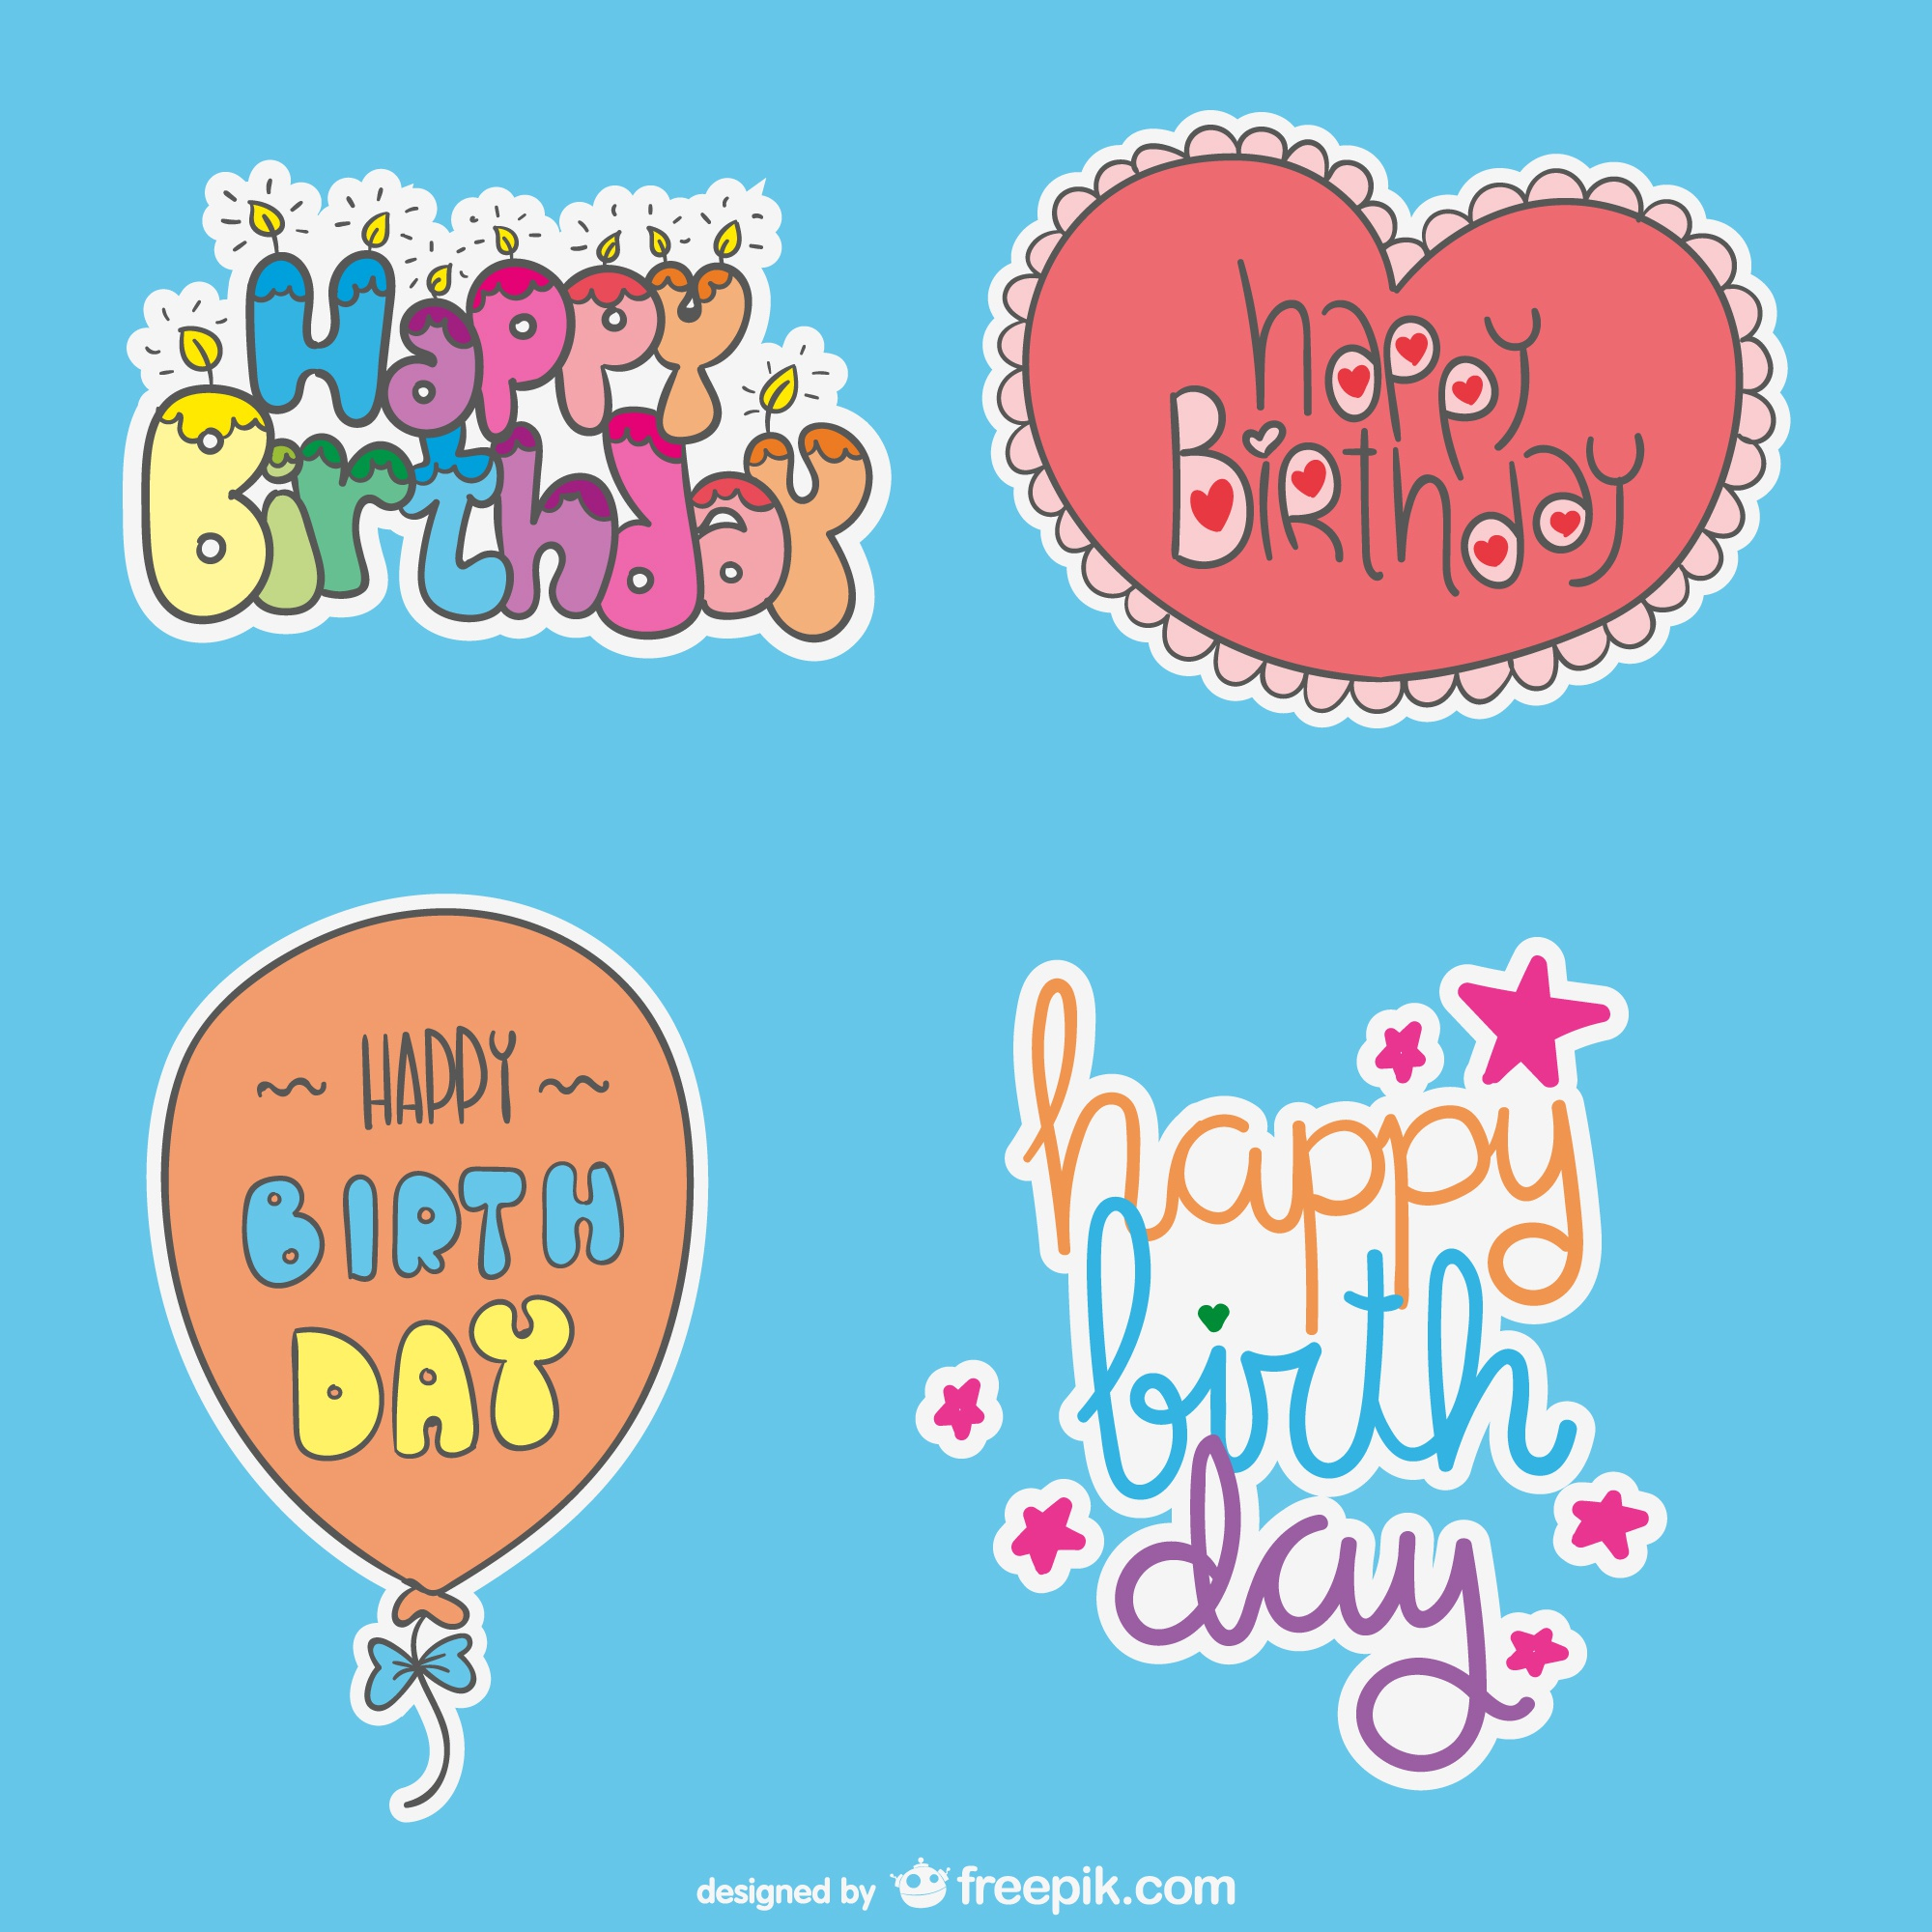 Cute good wishes for birthdays